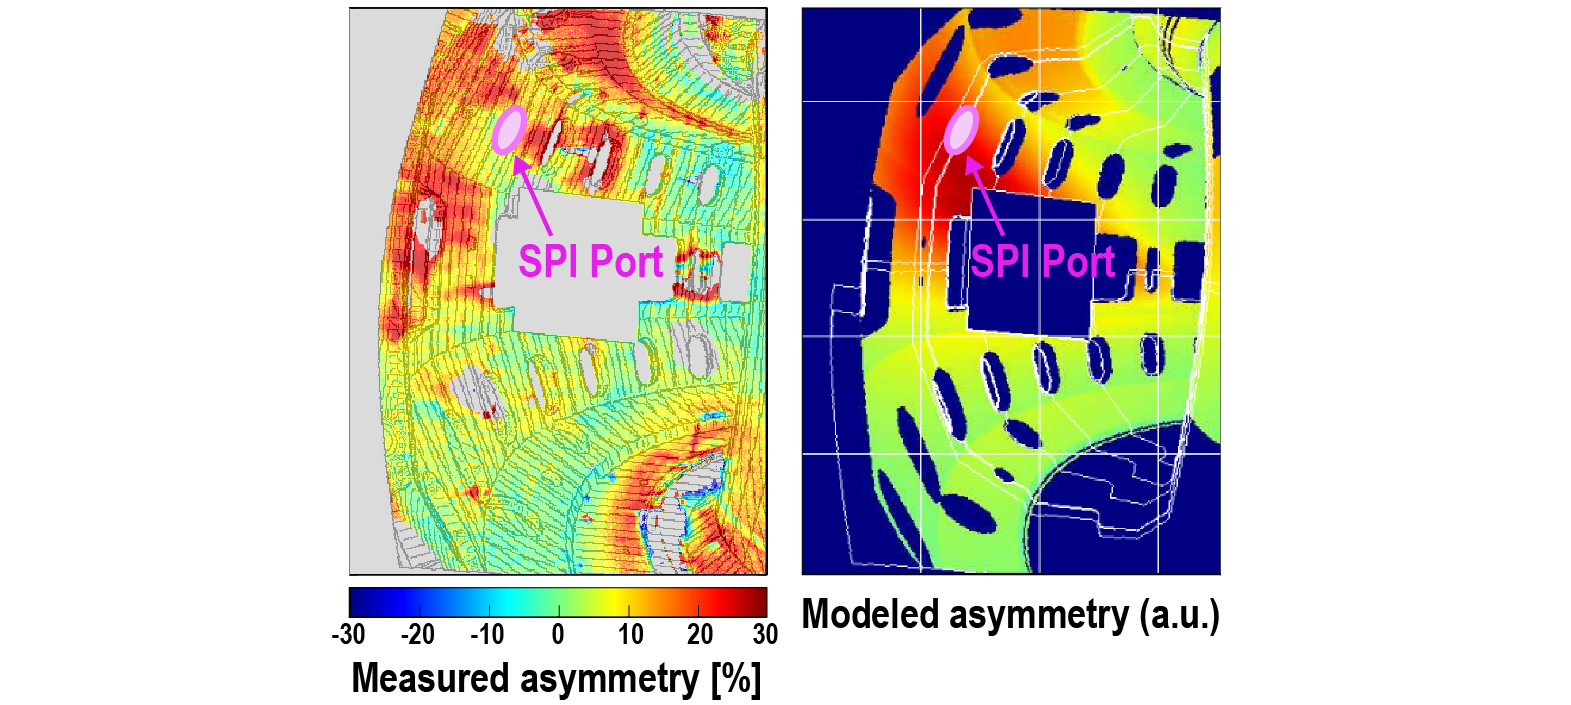 Radiation asymmetries during neon SPI lead to localized heating around the SPI port (left), but estimated peaking factors based on modeling (right) are below ITER limits.